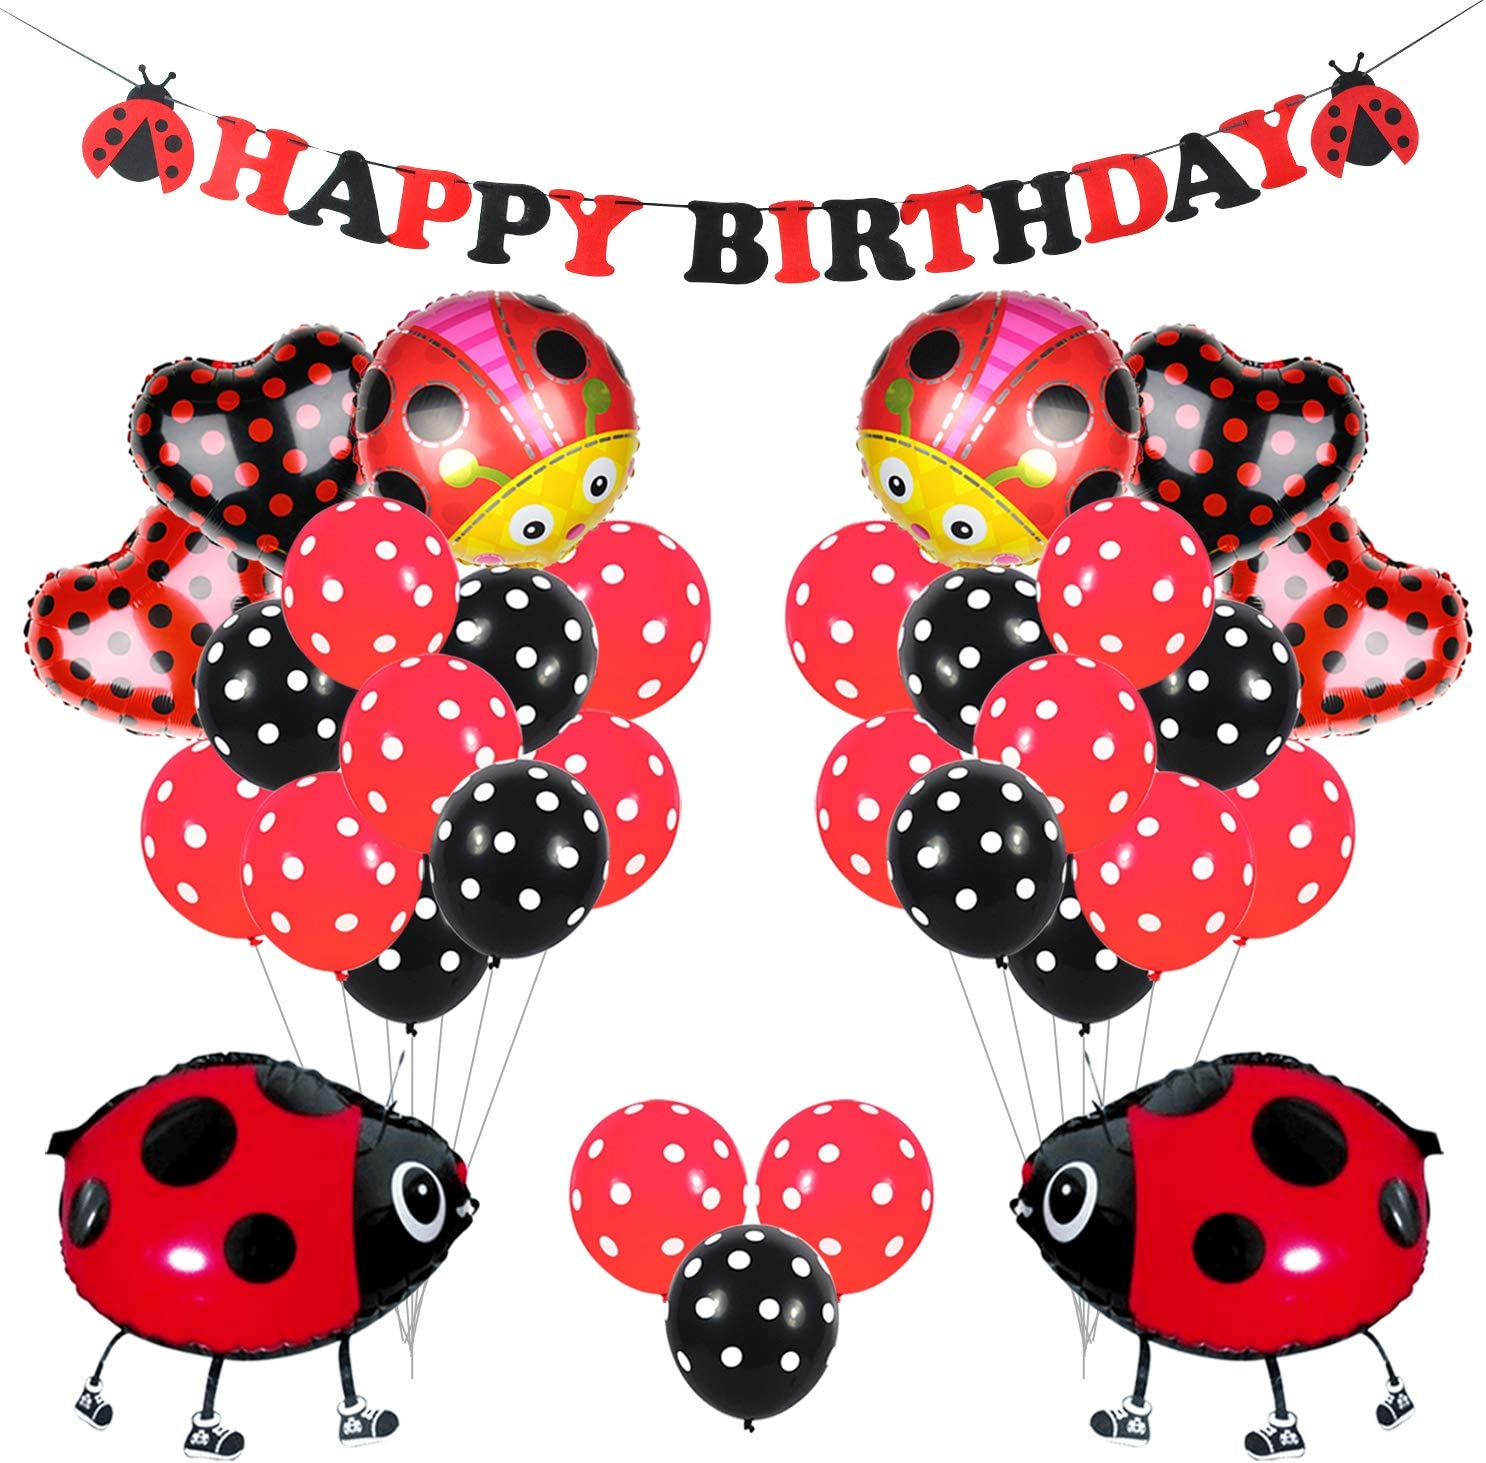 Kreatwow Ladybug Party Decorations Supplies Ladybug Balloons for Birthday Party Baby Shower